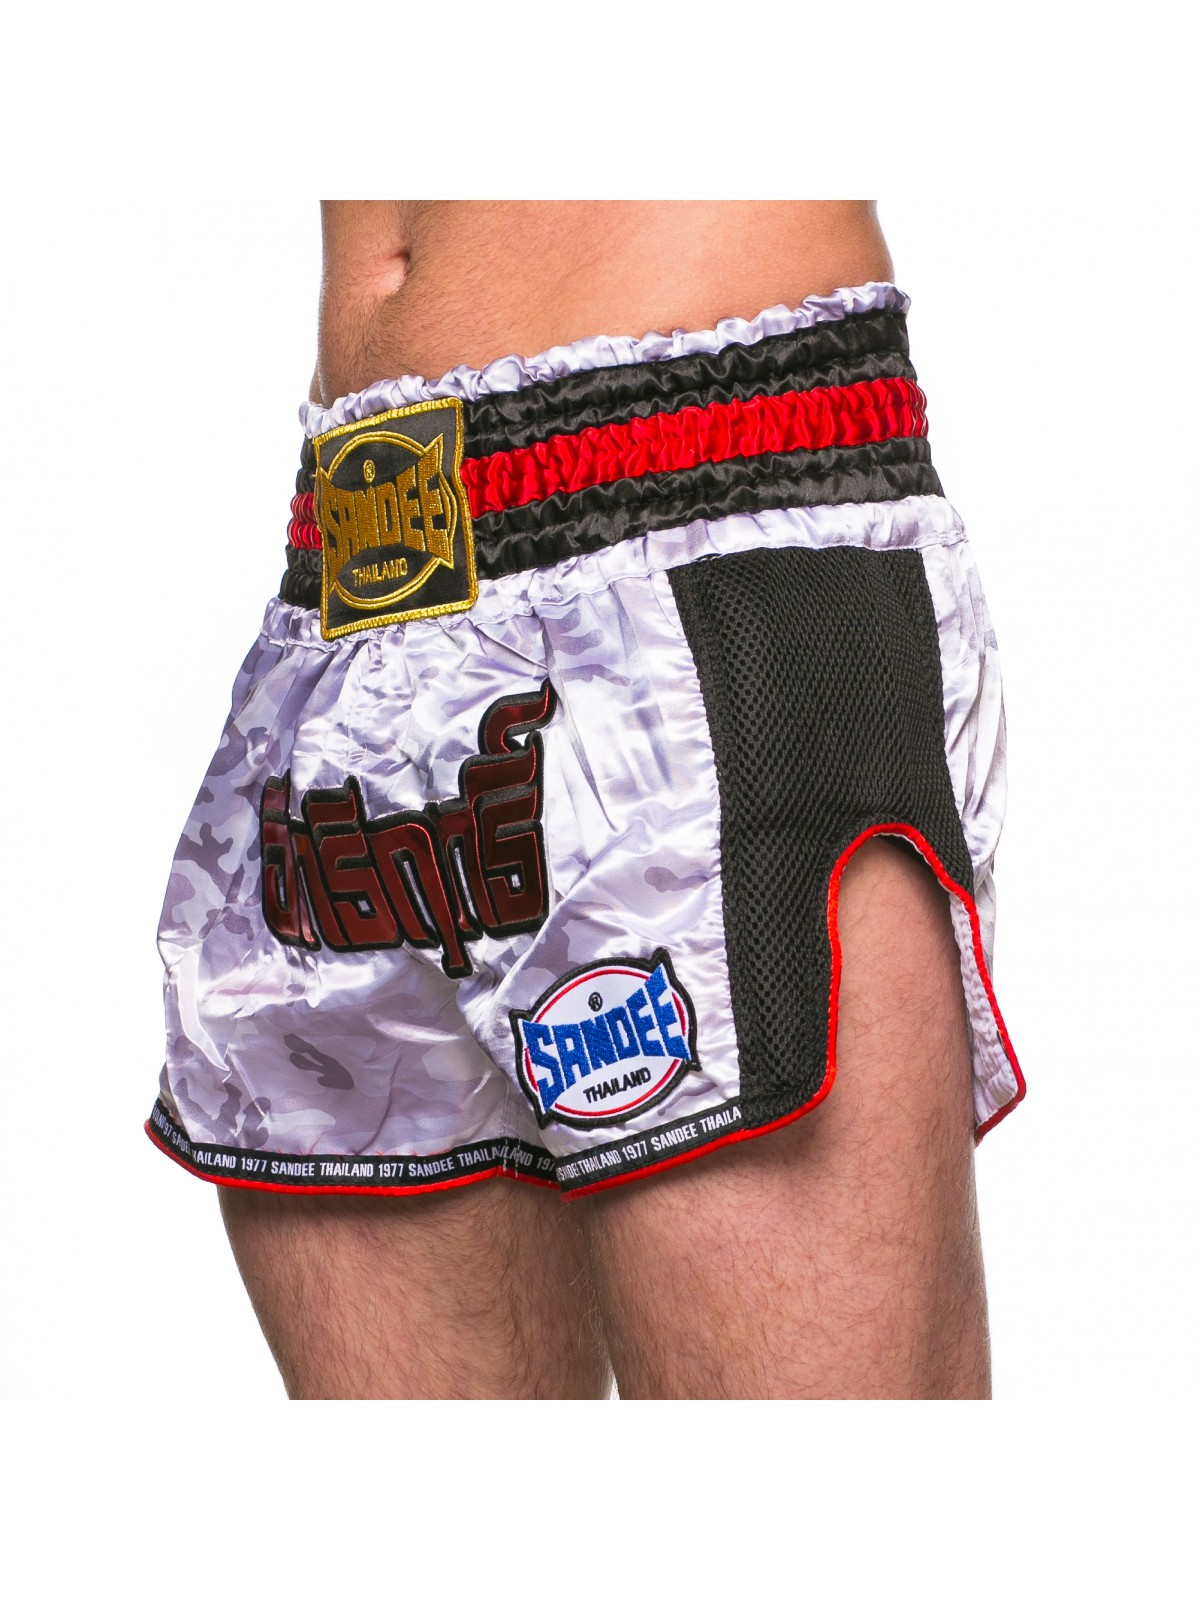 Sandee Supernatural Power Muay Thai Boxing Shorts White//Red